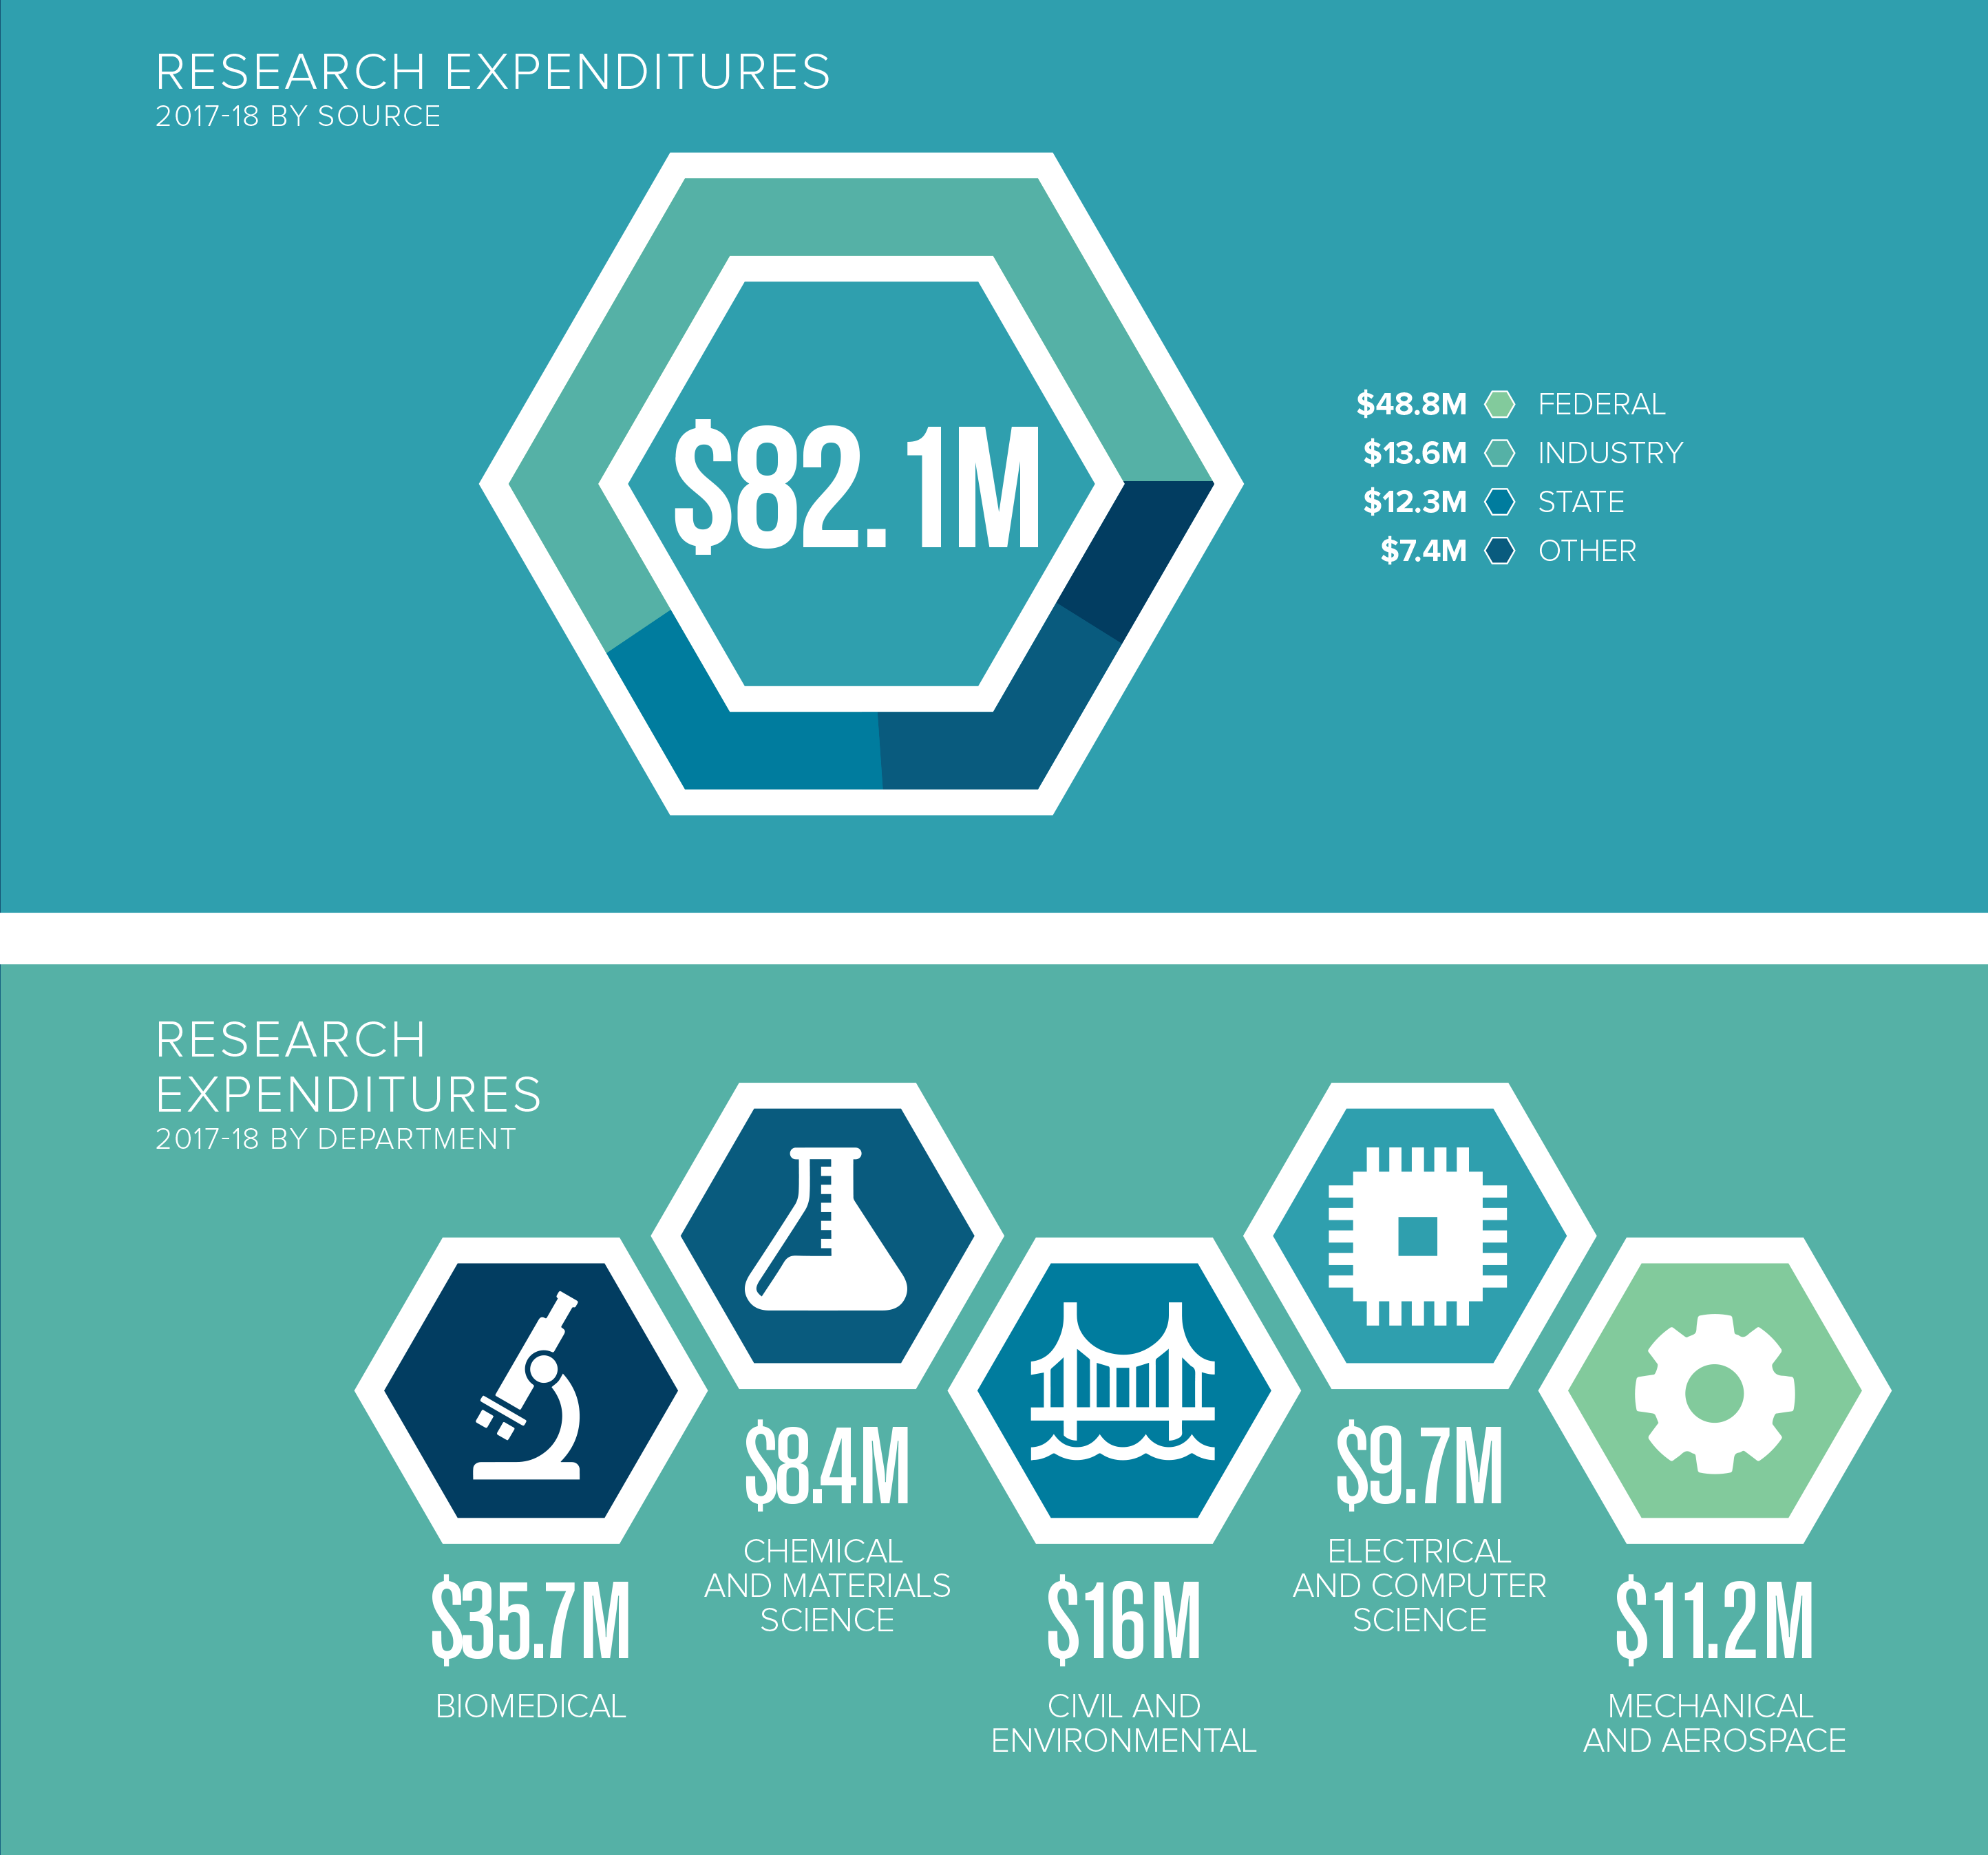 2019 Research Expenditures